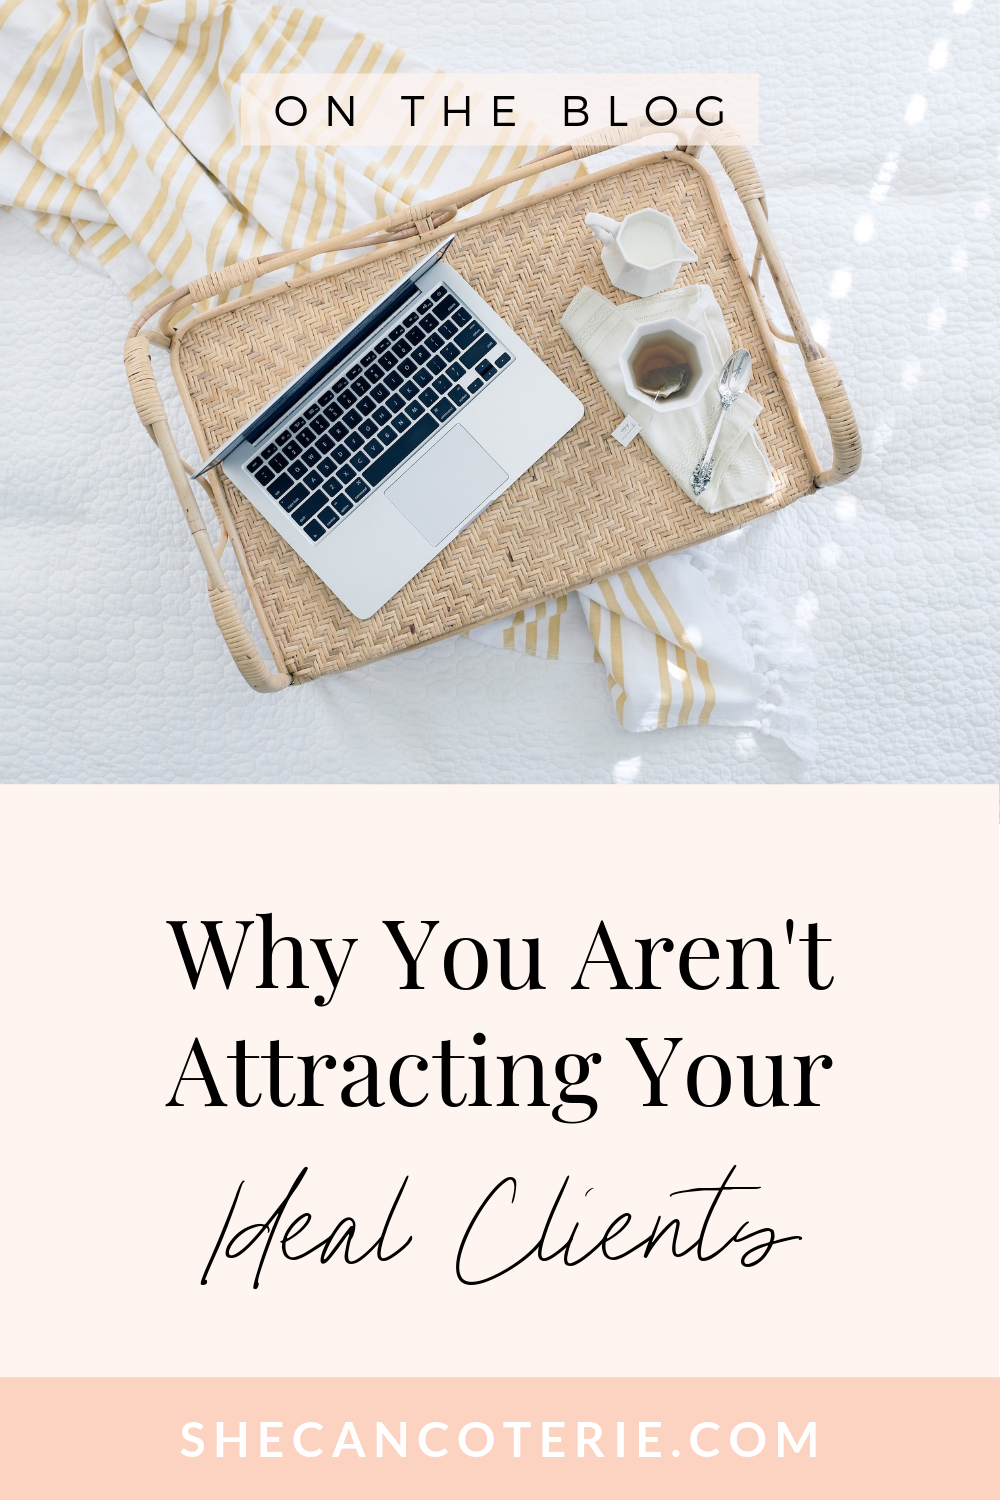 Why You Aren't Attracting Your Ideal Clients | SheCanCoterie.com